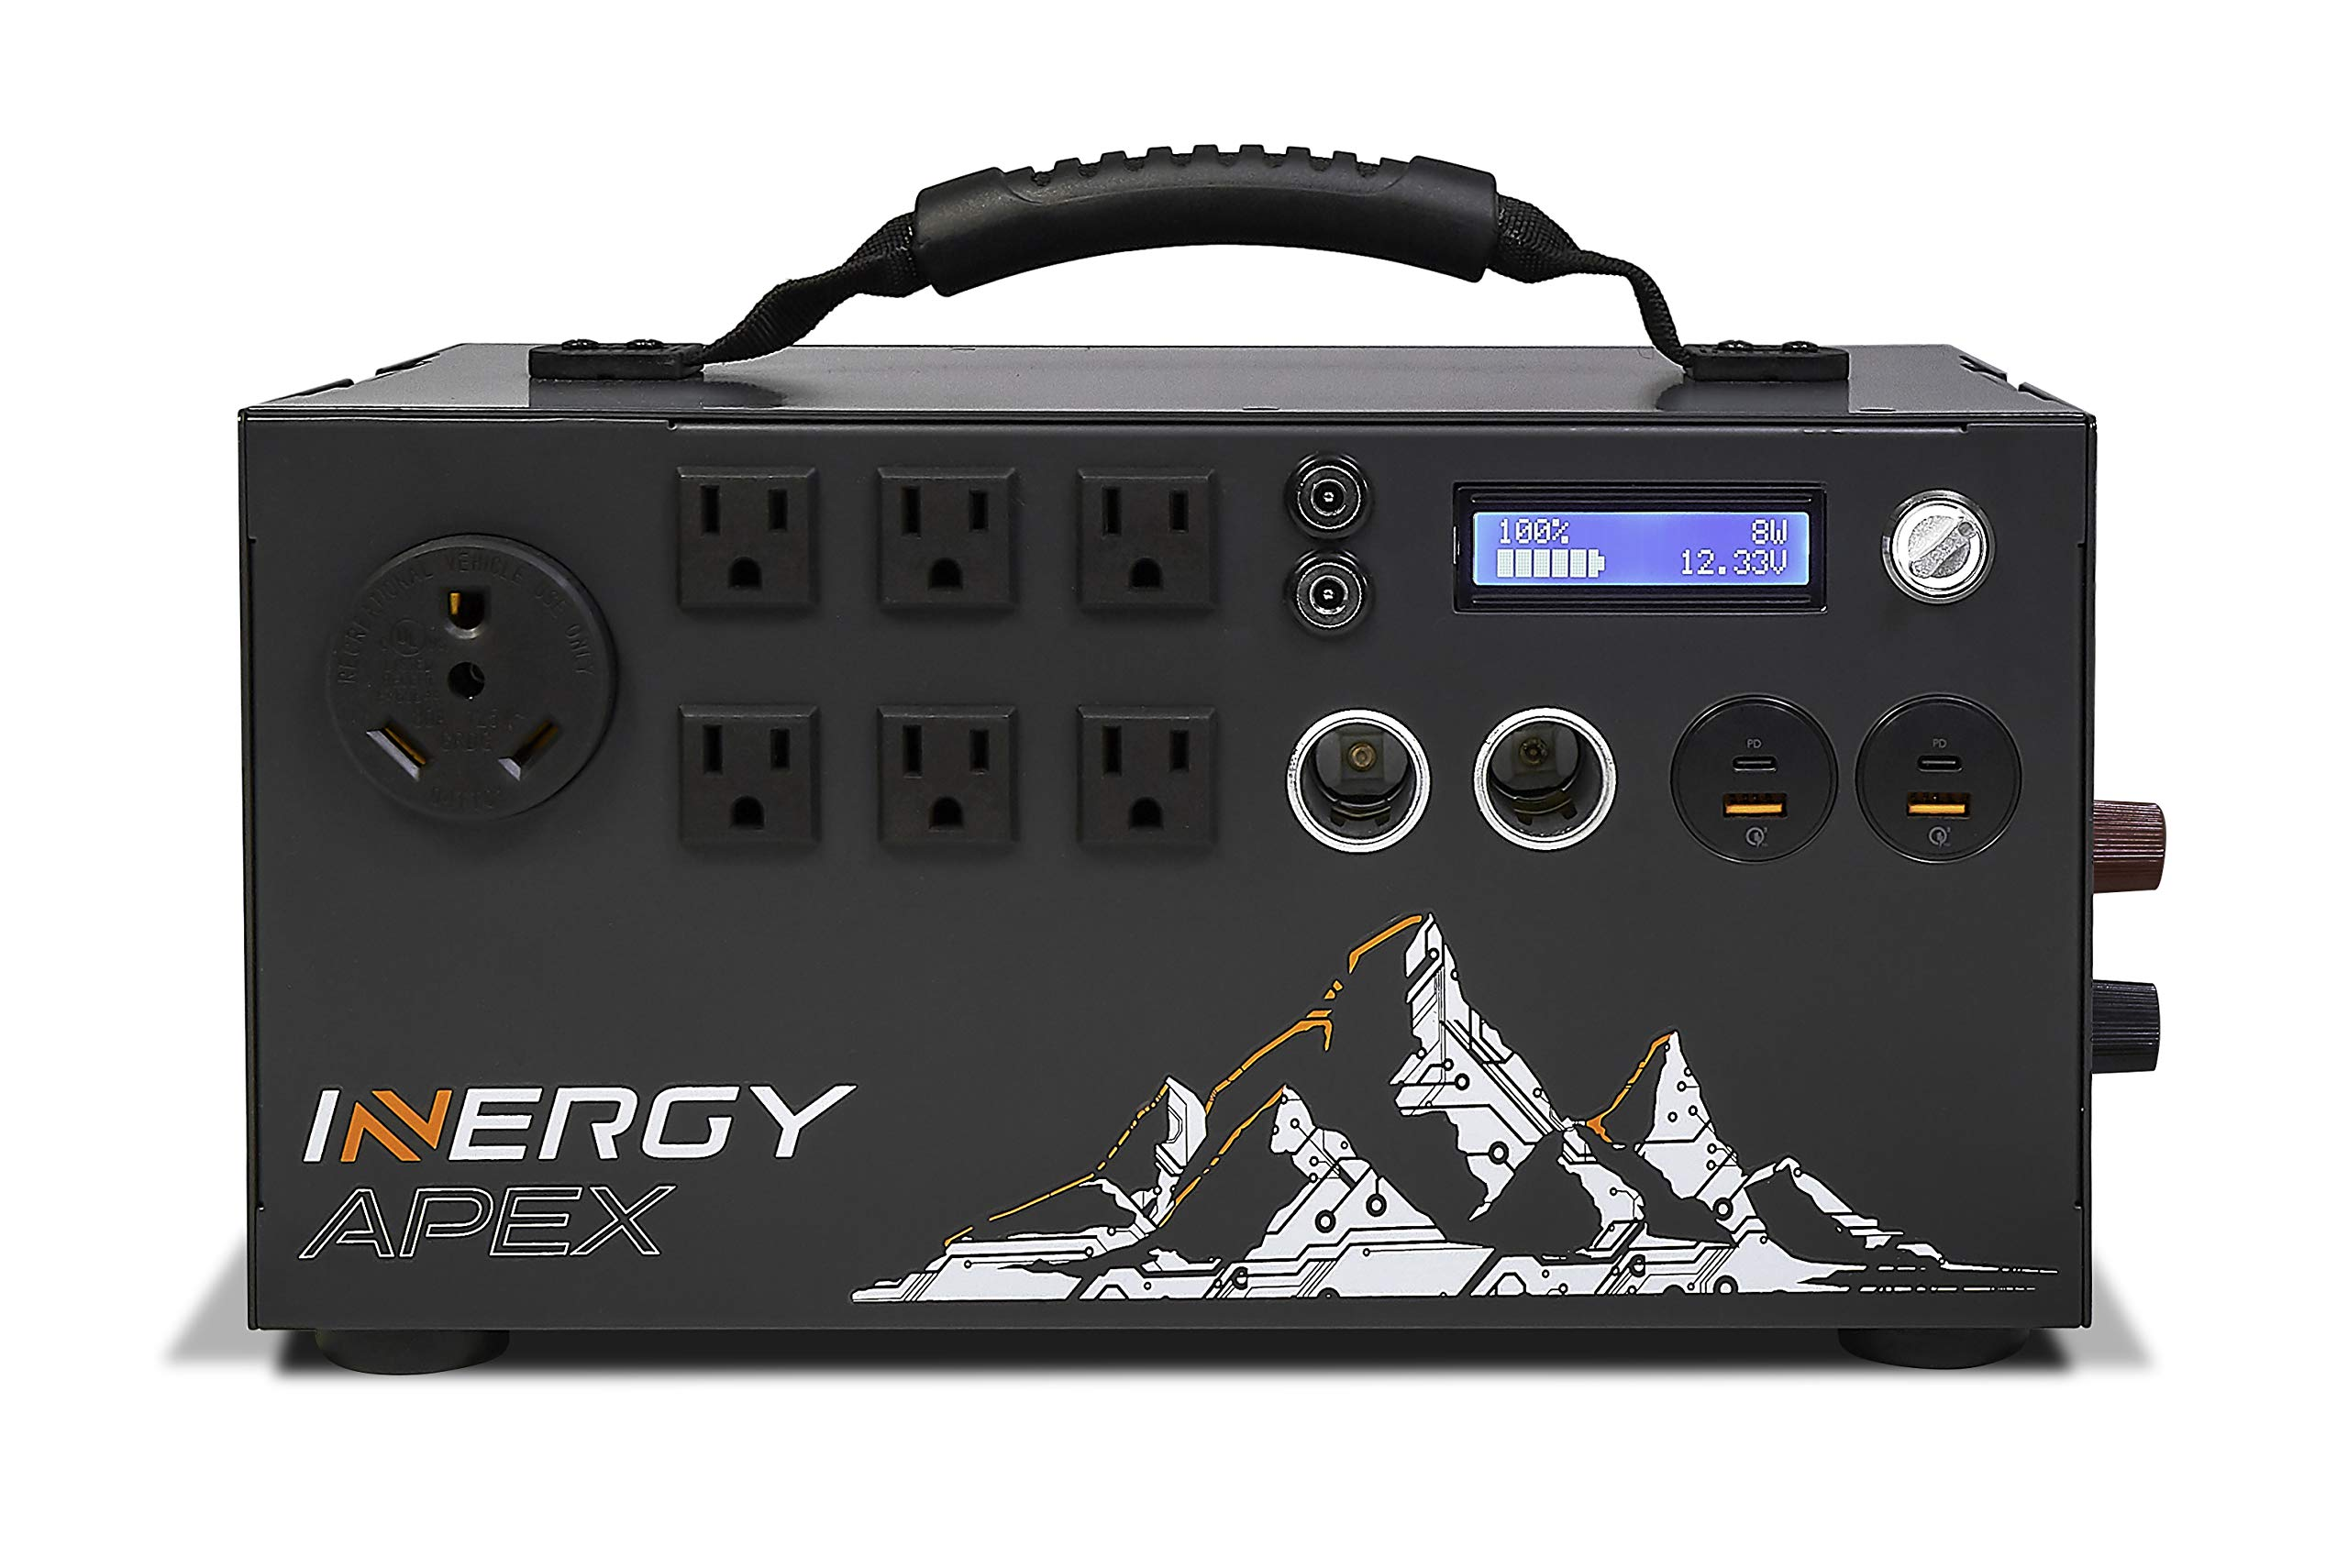 inergy Apex Lithium Portable Solar Power Station, 1100Wh Expandable Battery and Silent Alternative to Gas Generator 1500W Inverter (3000W Surge), 12V, USB-C, USB Quick Charge, 6 110-120 AC Outputs by inergy